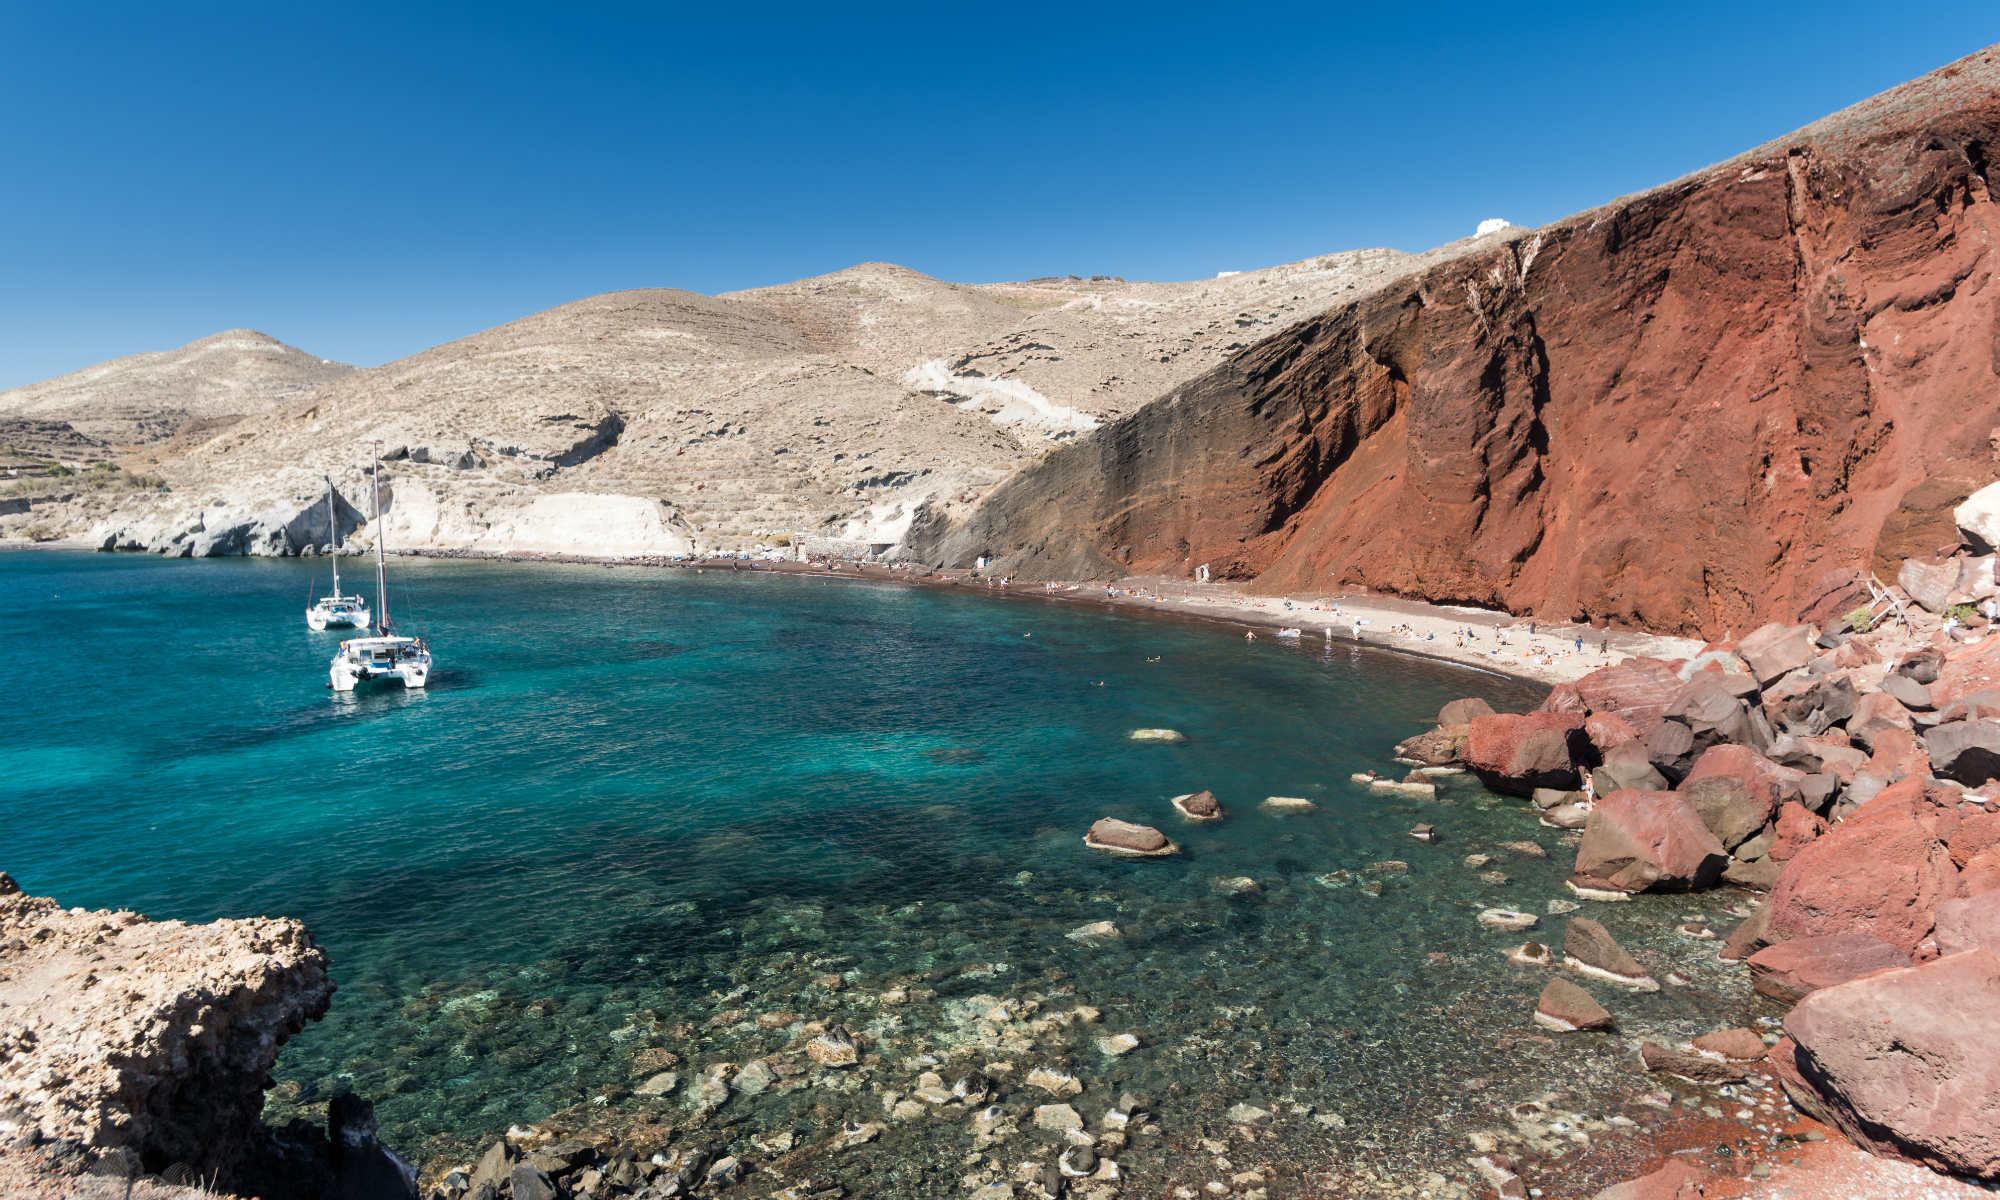 View of the Red Beach in Santorini.